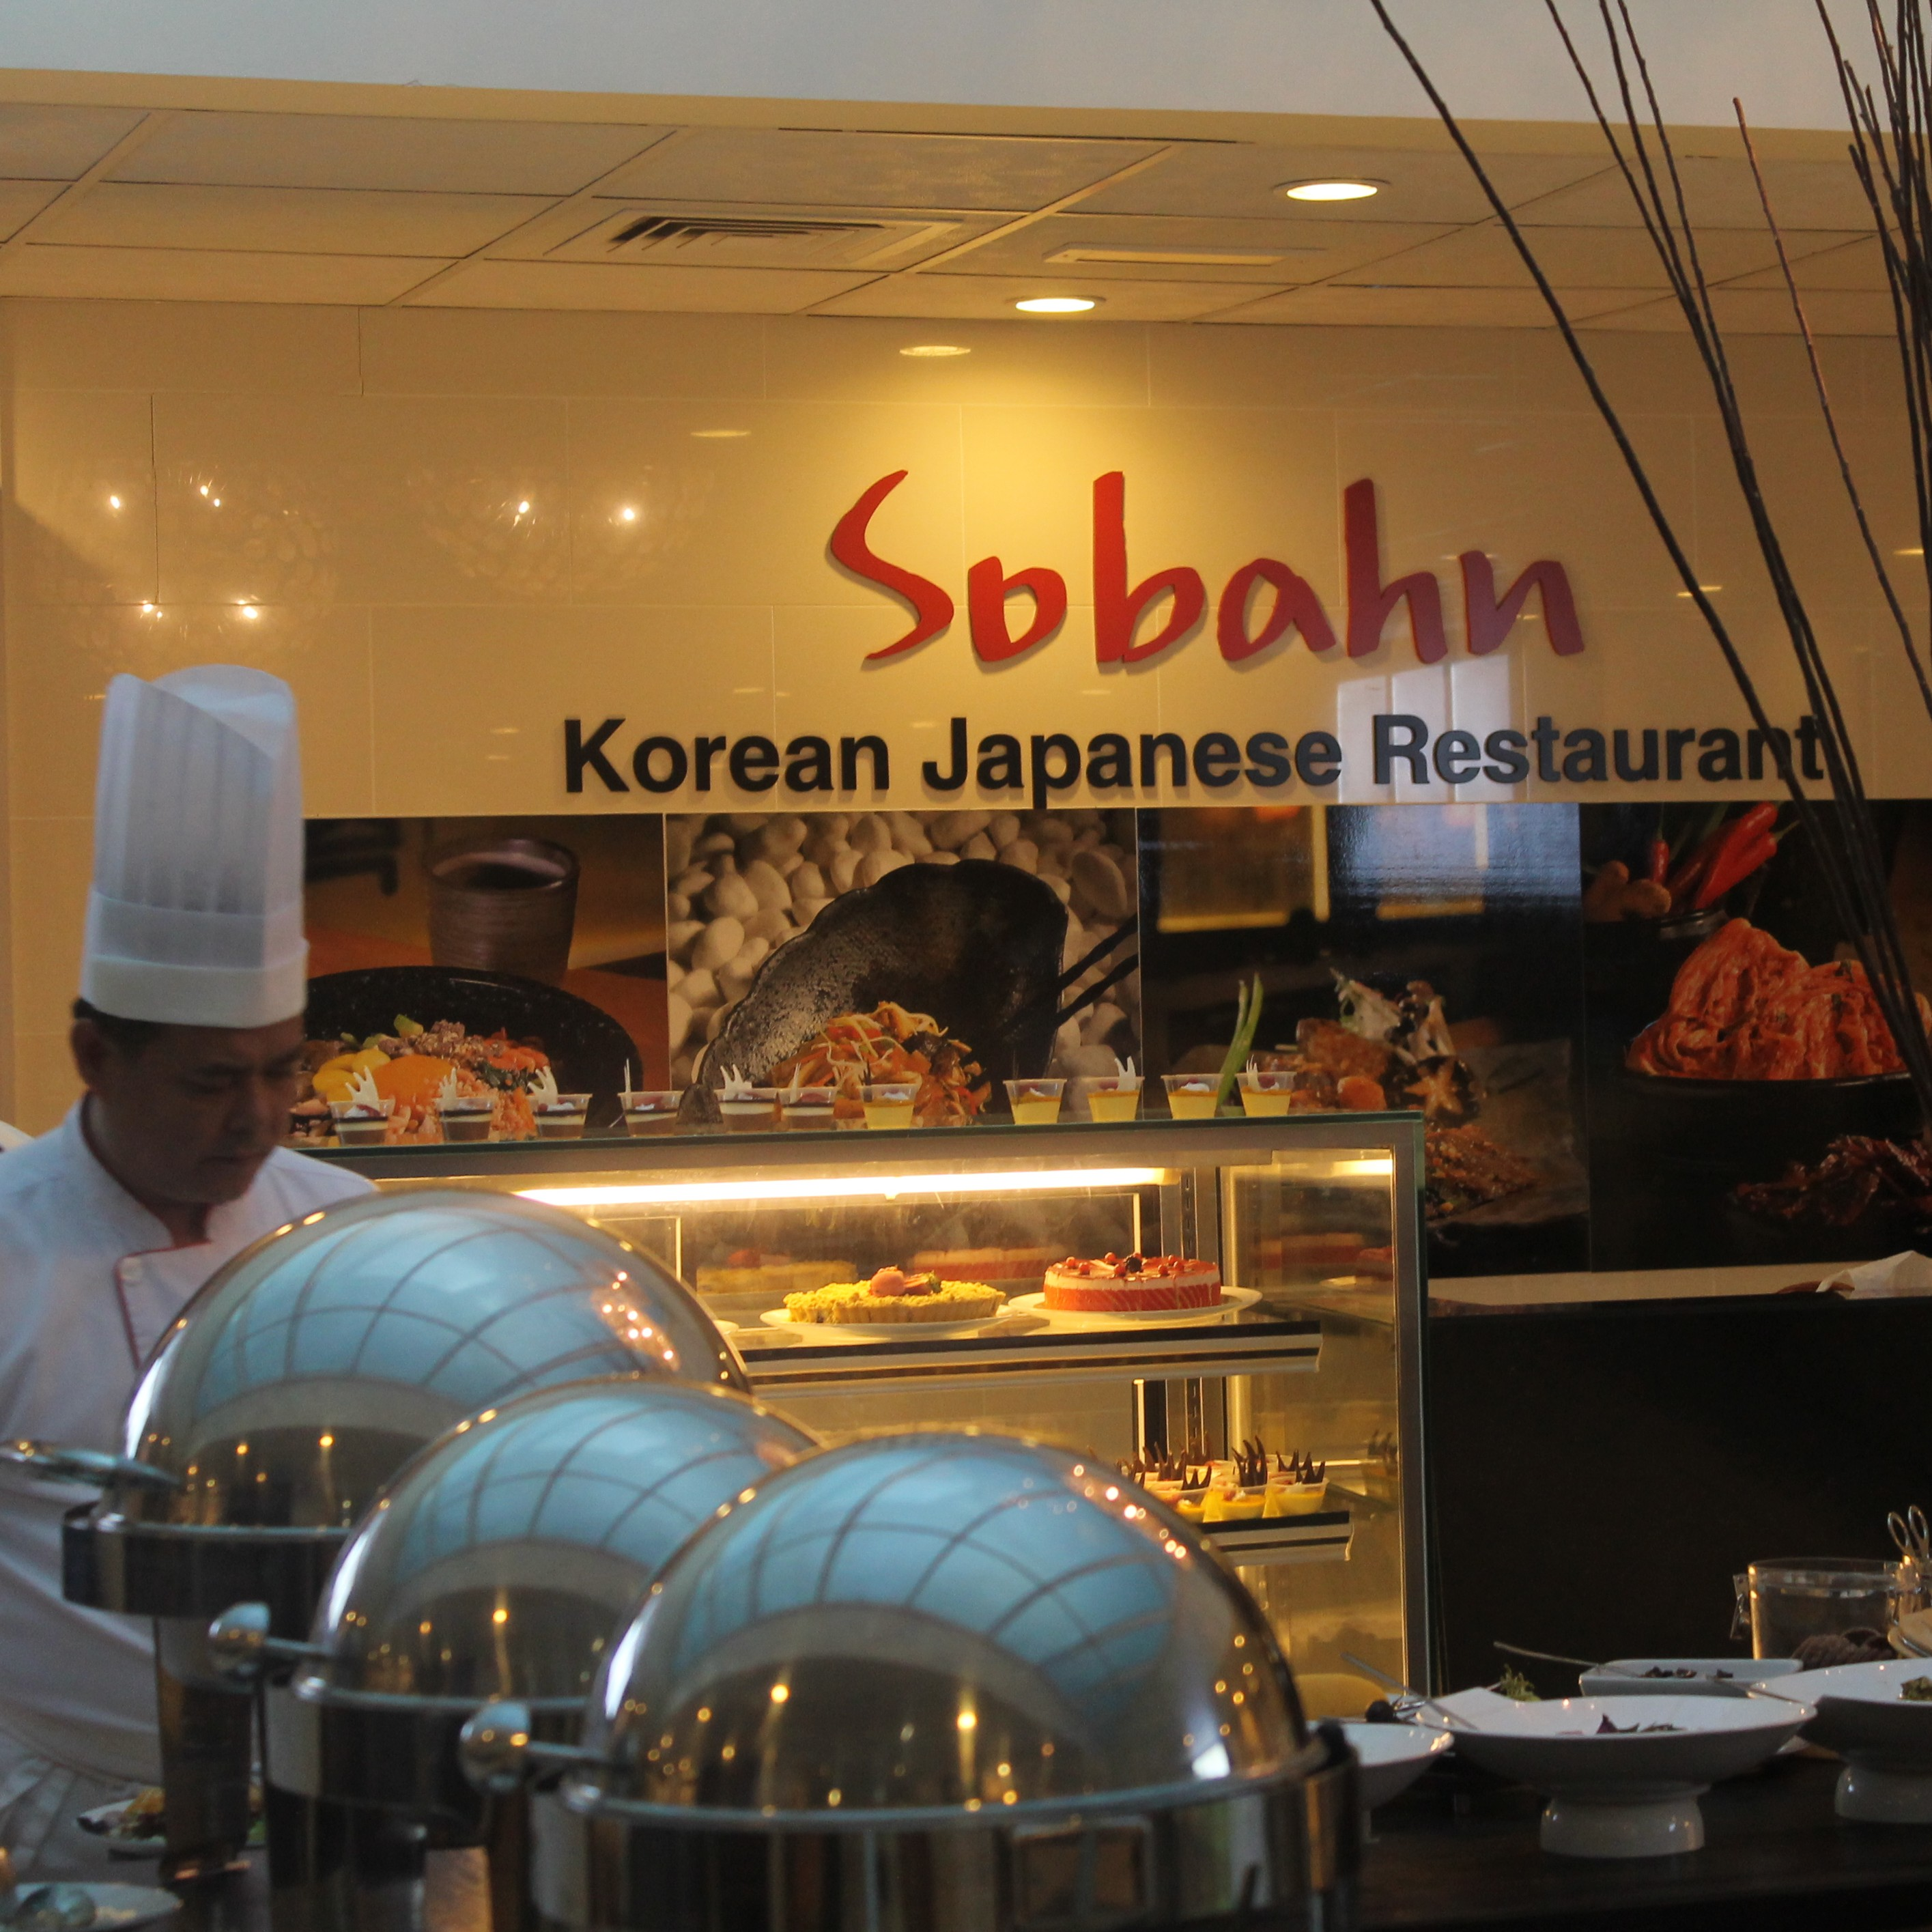 JAPANESE KOREAN RESTAURANT SOBAHN